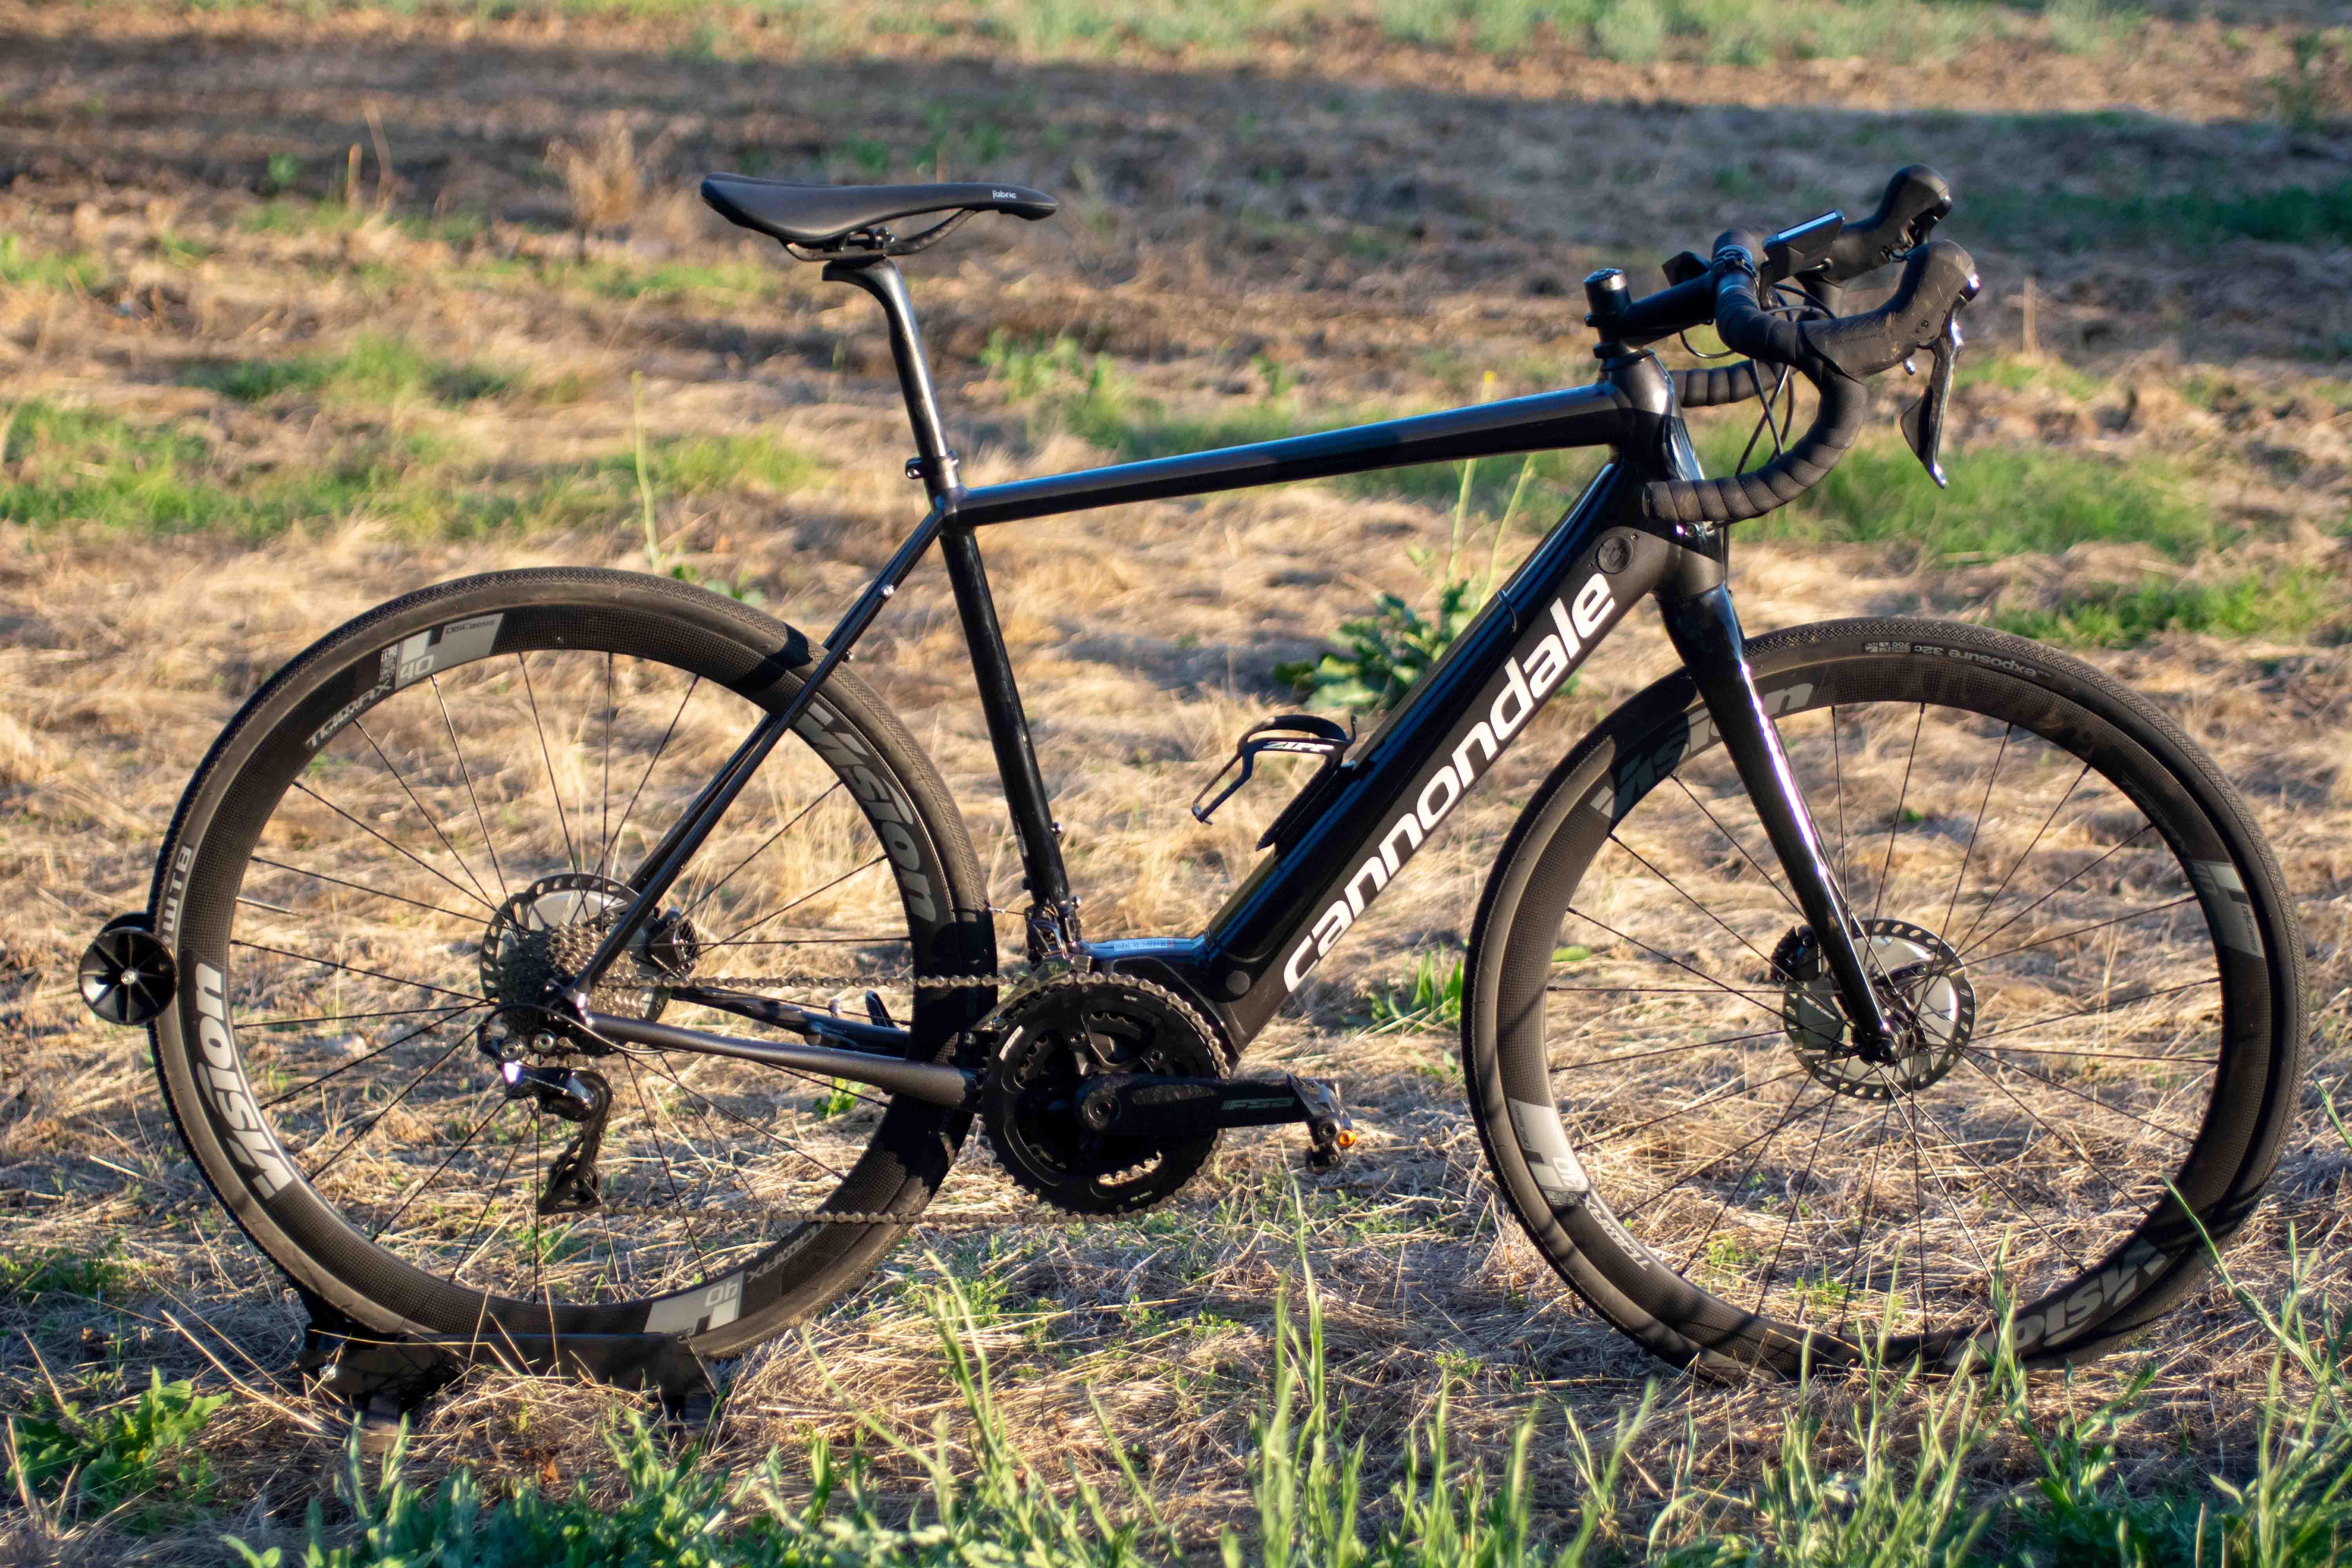 d11c83d12d9 Like its traditional road bike Synapse cousin, the Synapse NEO comes  equipped with a comfortable, upright endurance geometry which kept us on  the road for ...